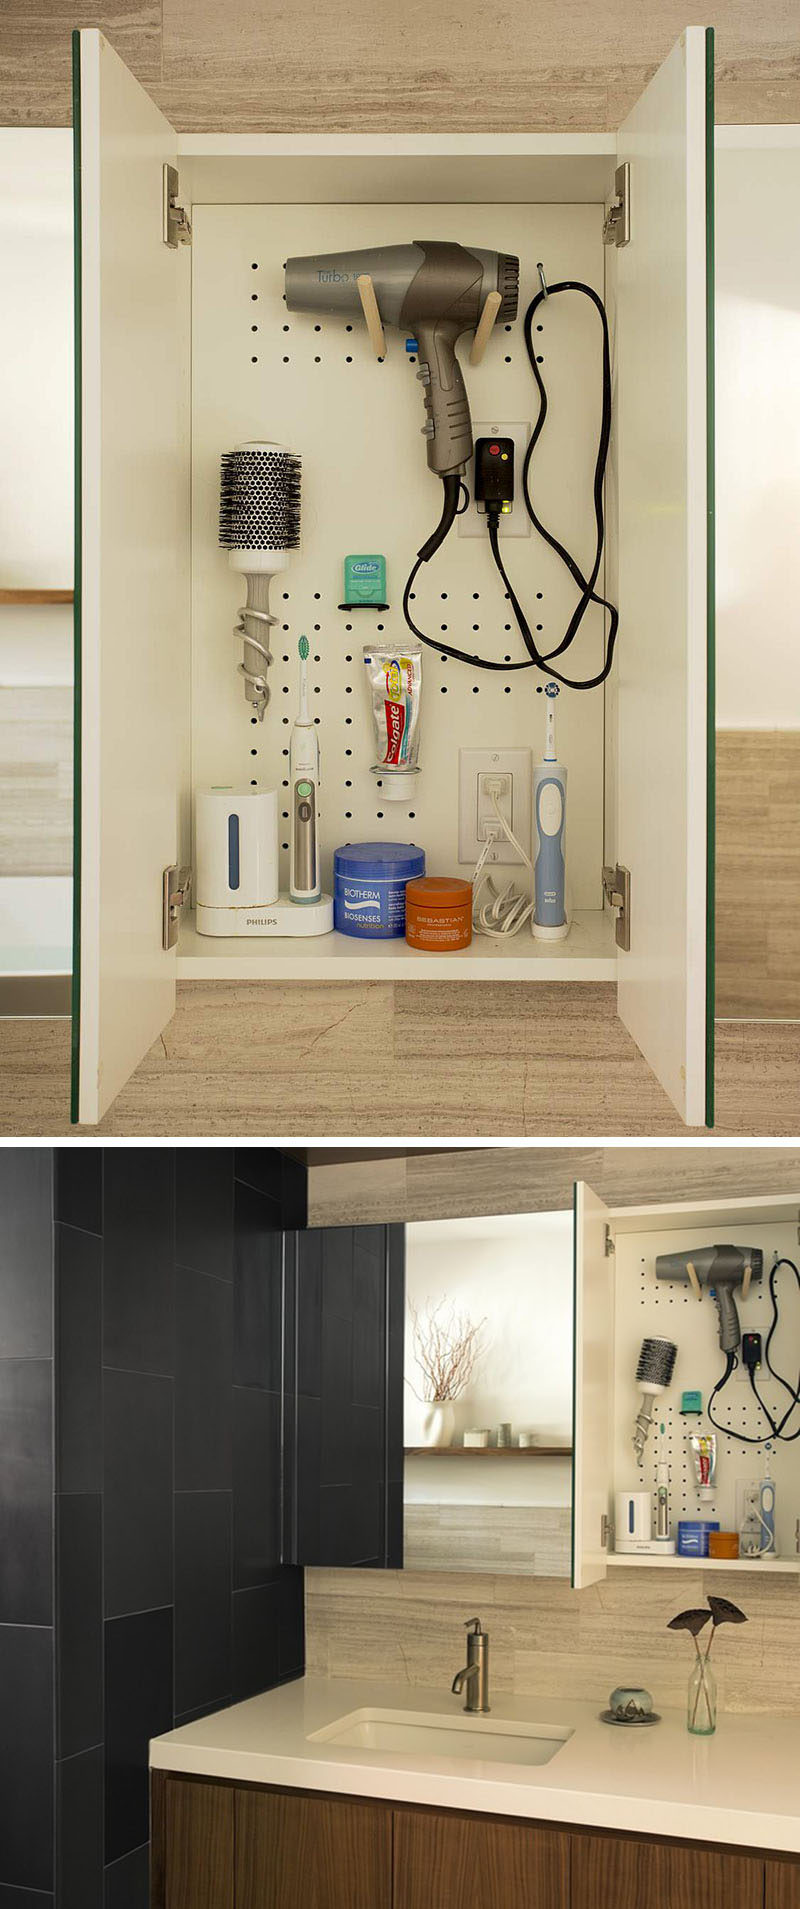 7 Bathroom Storage Ideas For Hair Tools // Pegboard Cabinetry